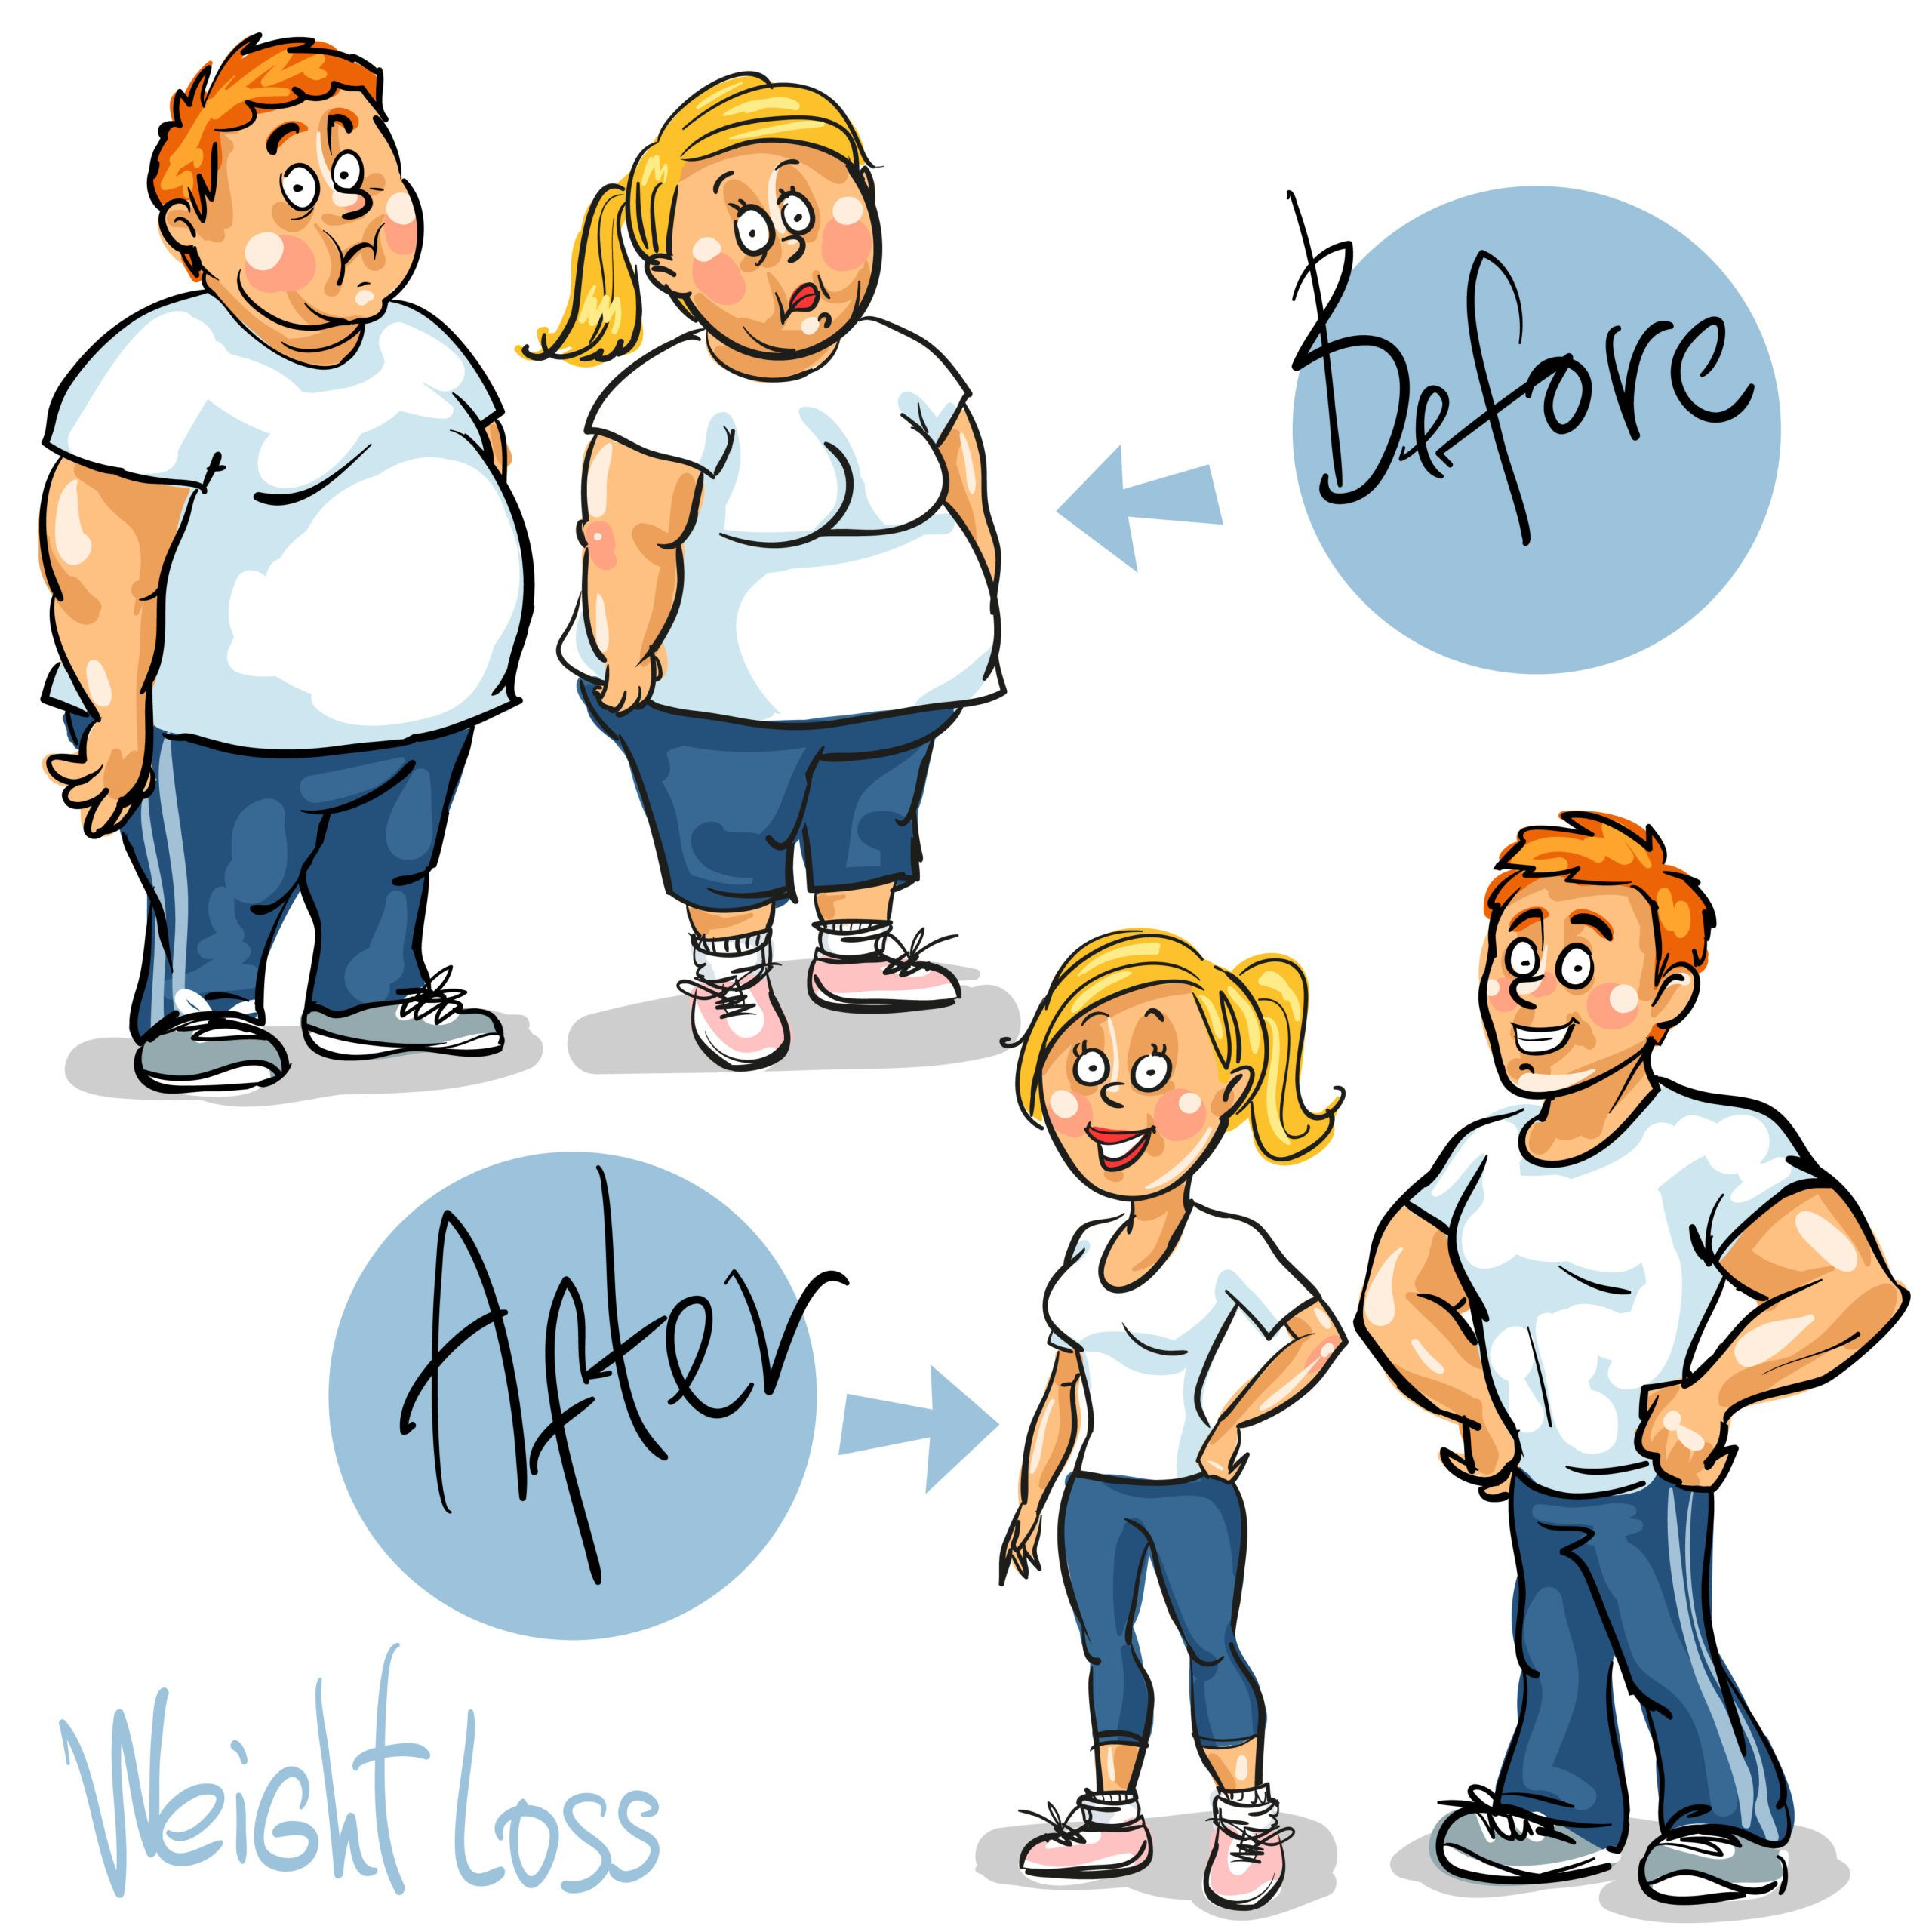 hand_drawn_weight_loss_bfore_and_after_2_20062013